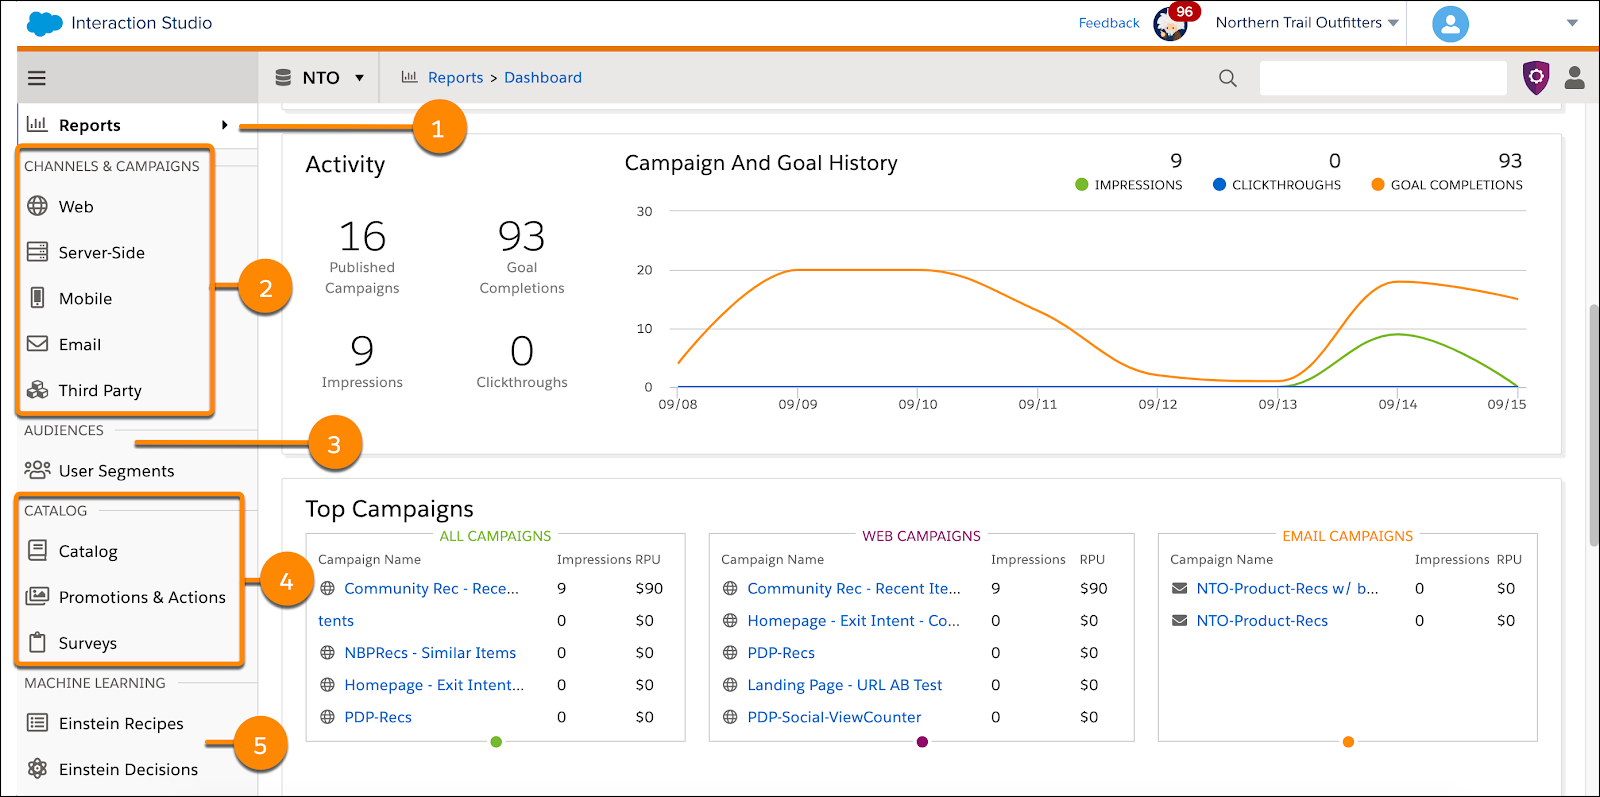 Interaction Studio dashboard with callouts for reports, channels, user segments, catalog, and machine learning.